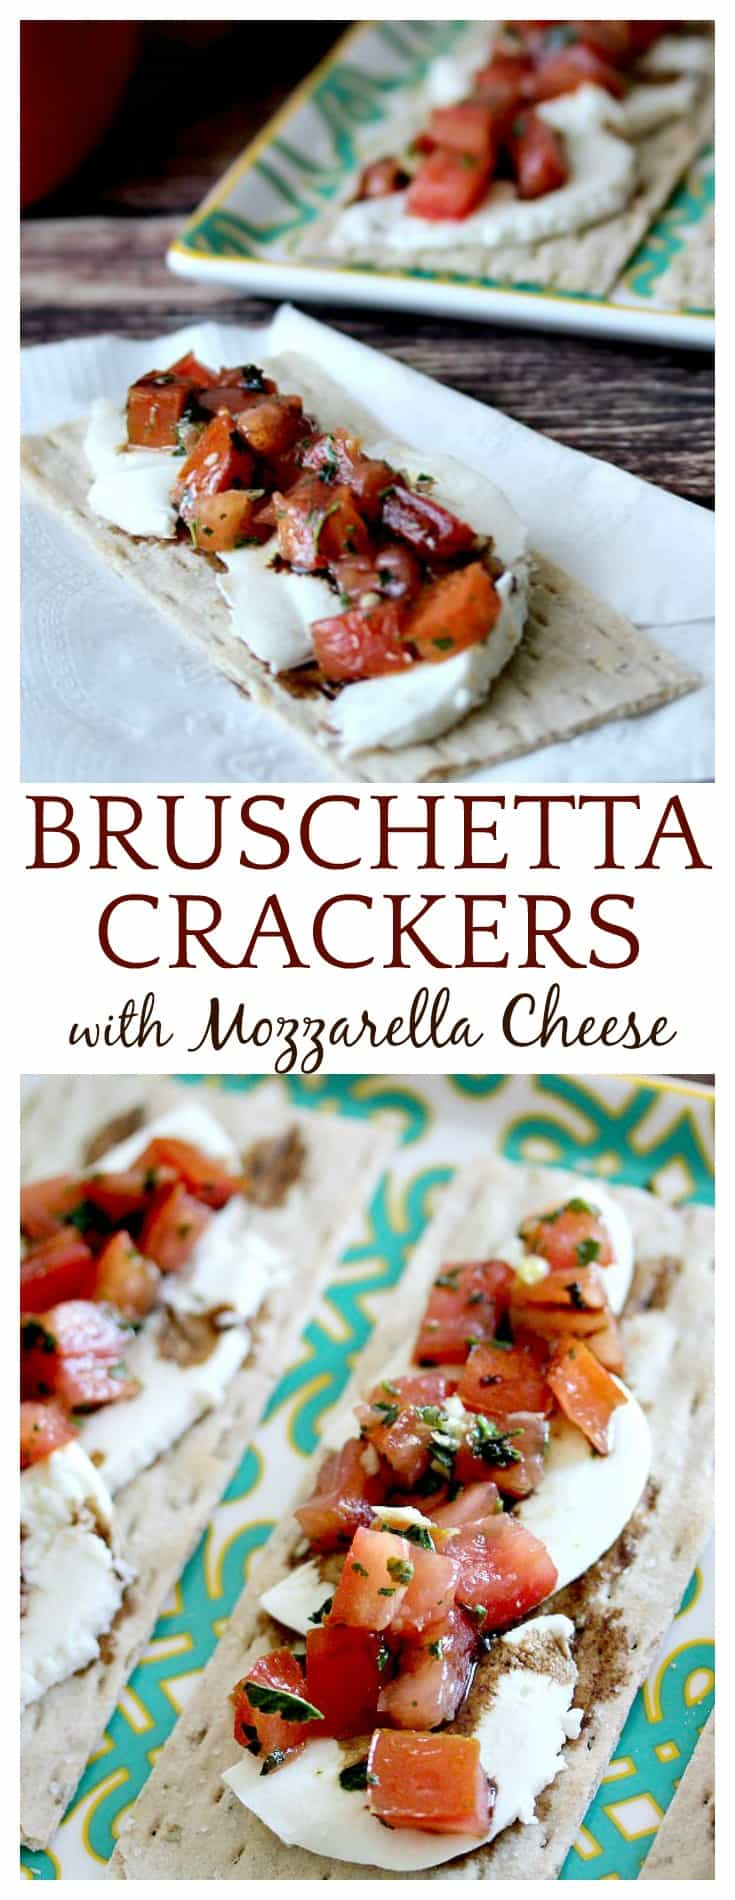 This is a perfect appetizer for the upcoming holiday season! Using Wasa Thins Rosemary and Sea Salt Crackers makes putting this Bruschetta recipe together even easier!